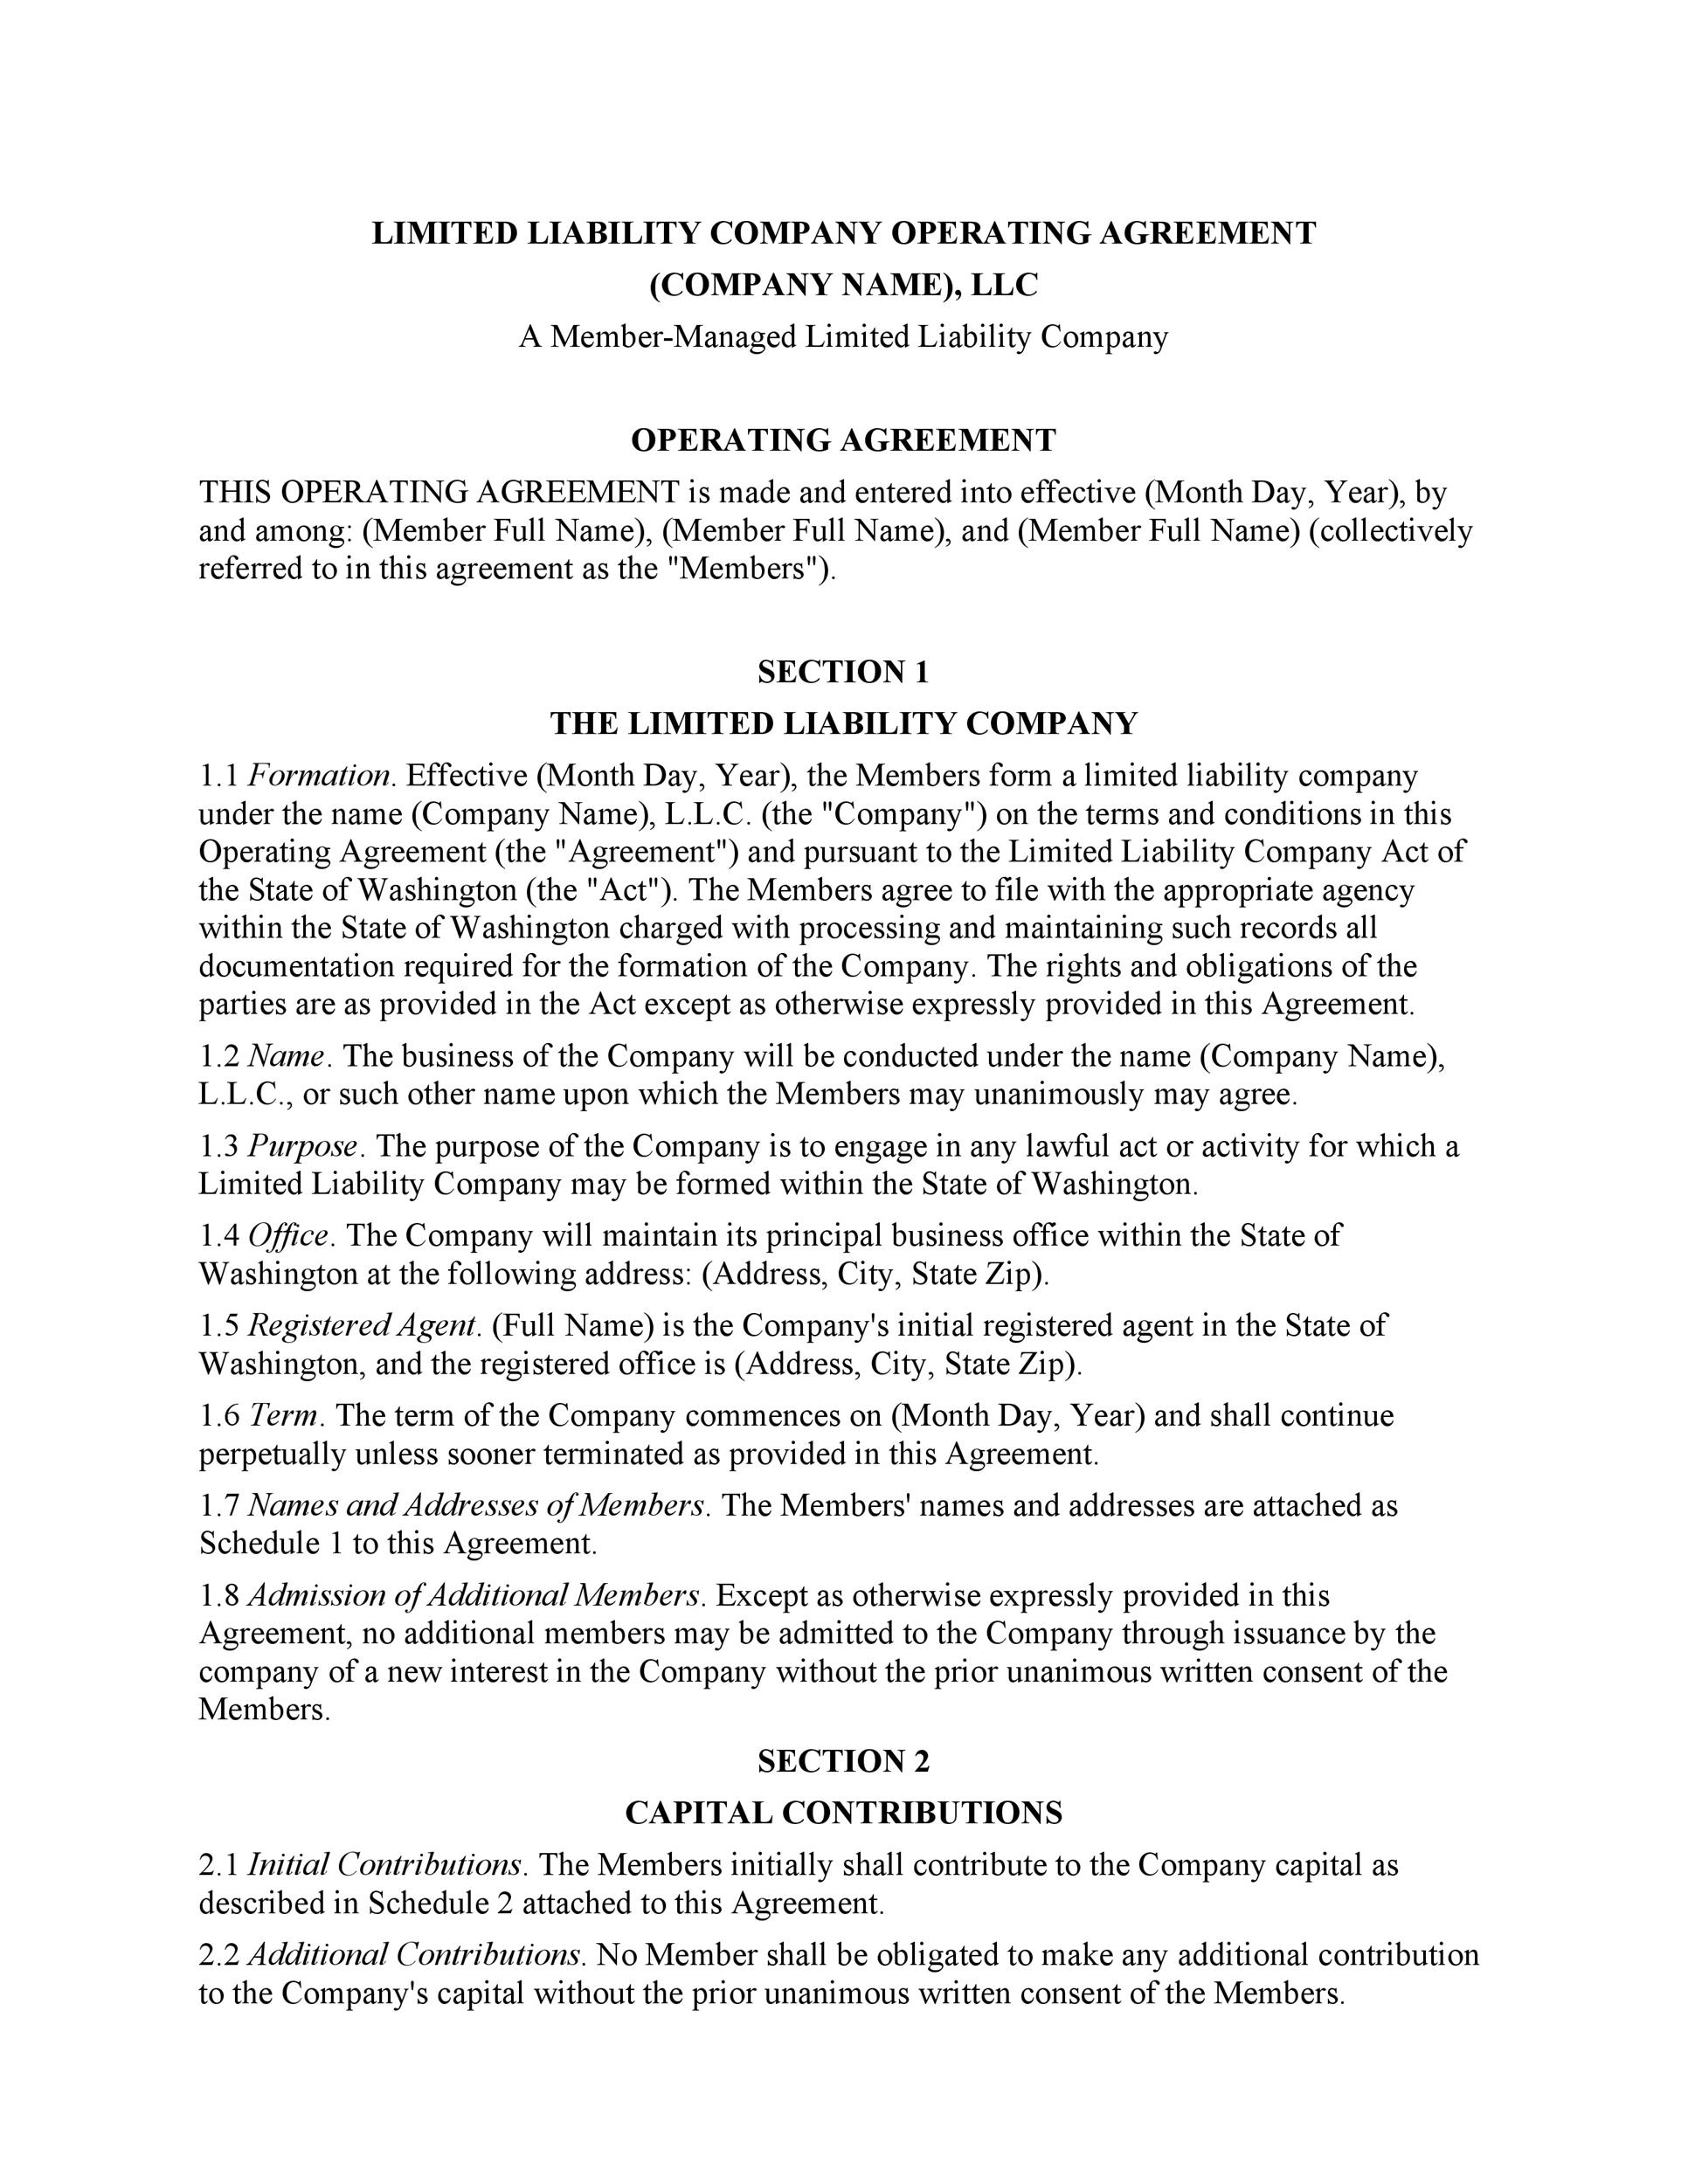 Free llc operating agreement template 09